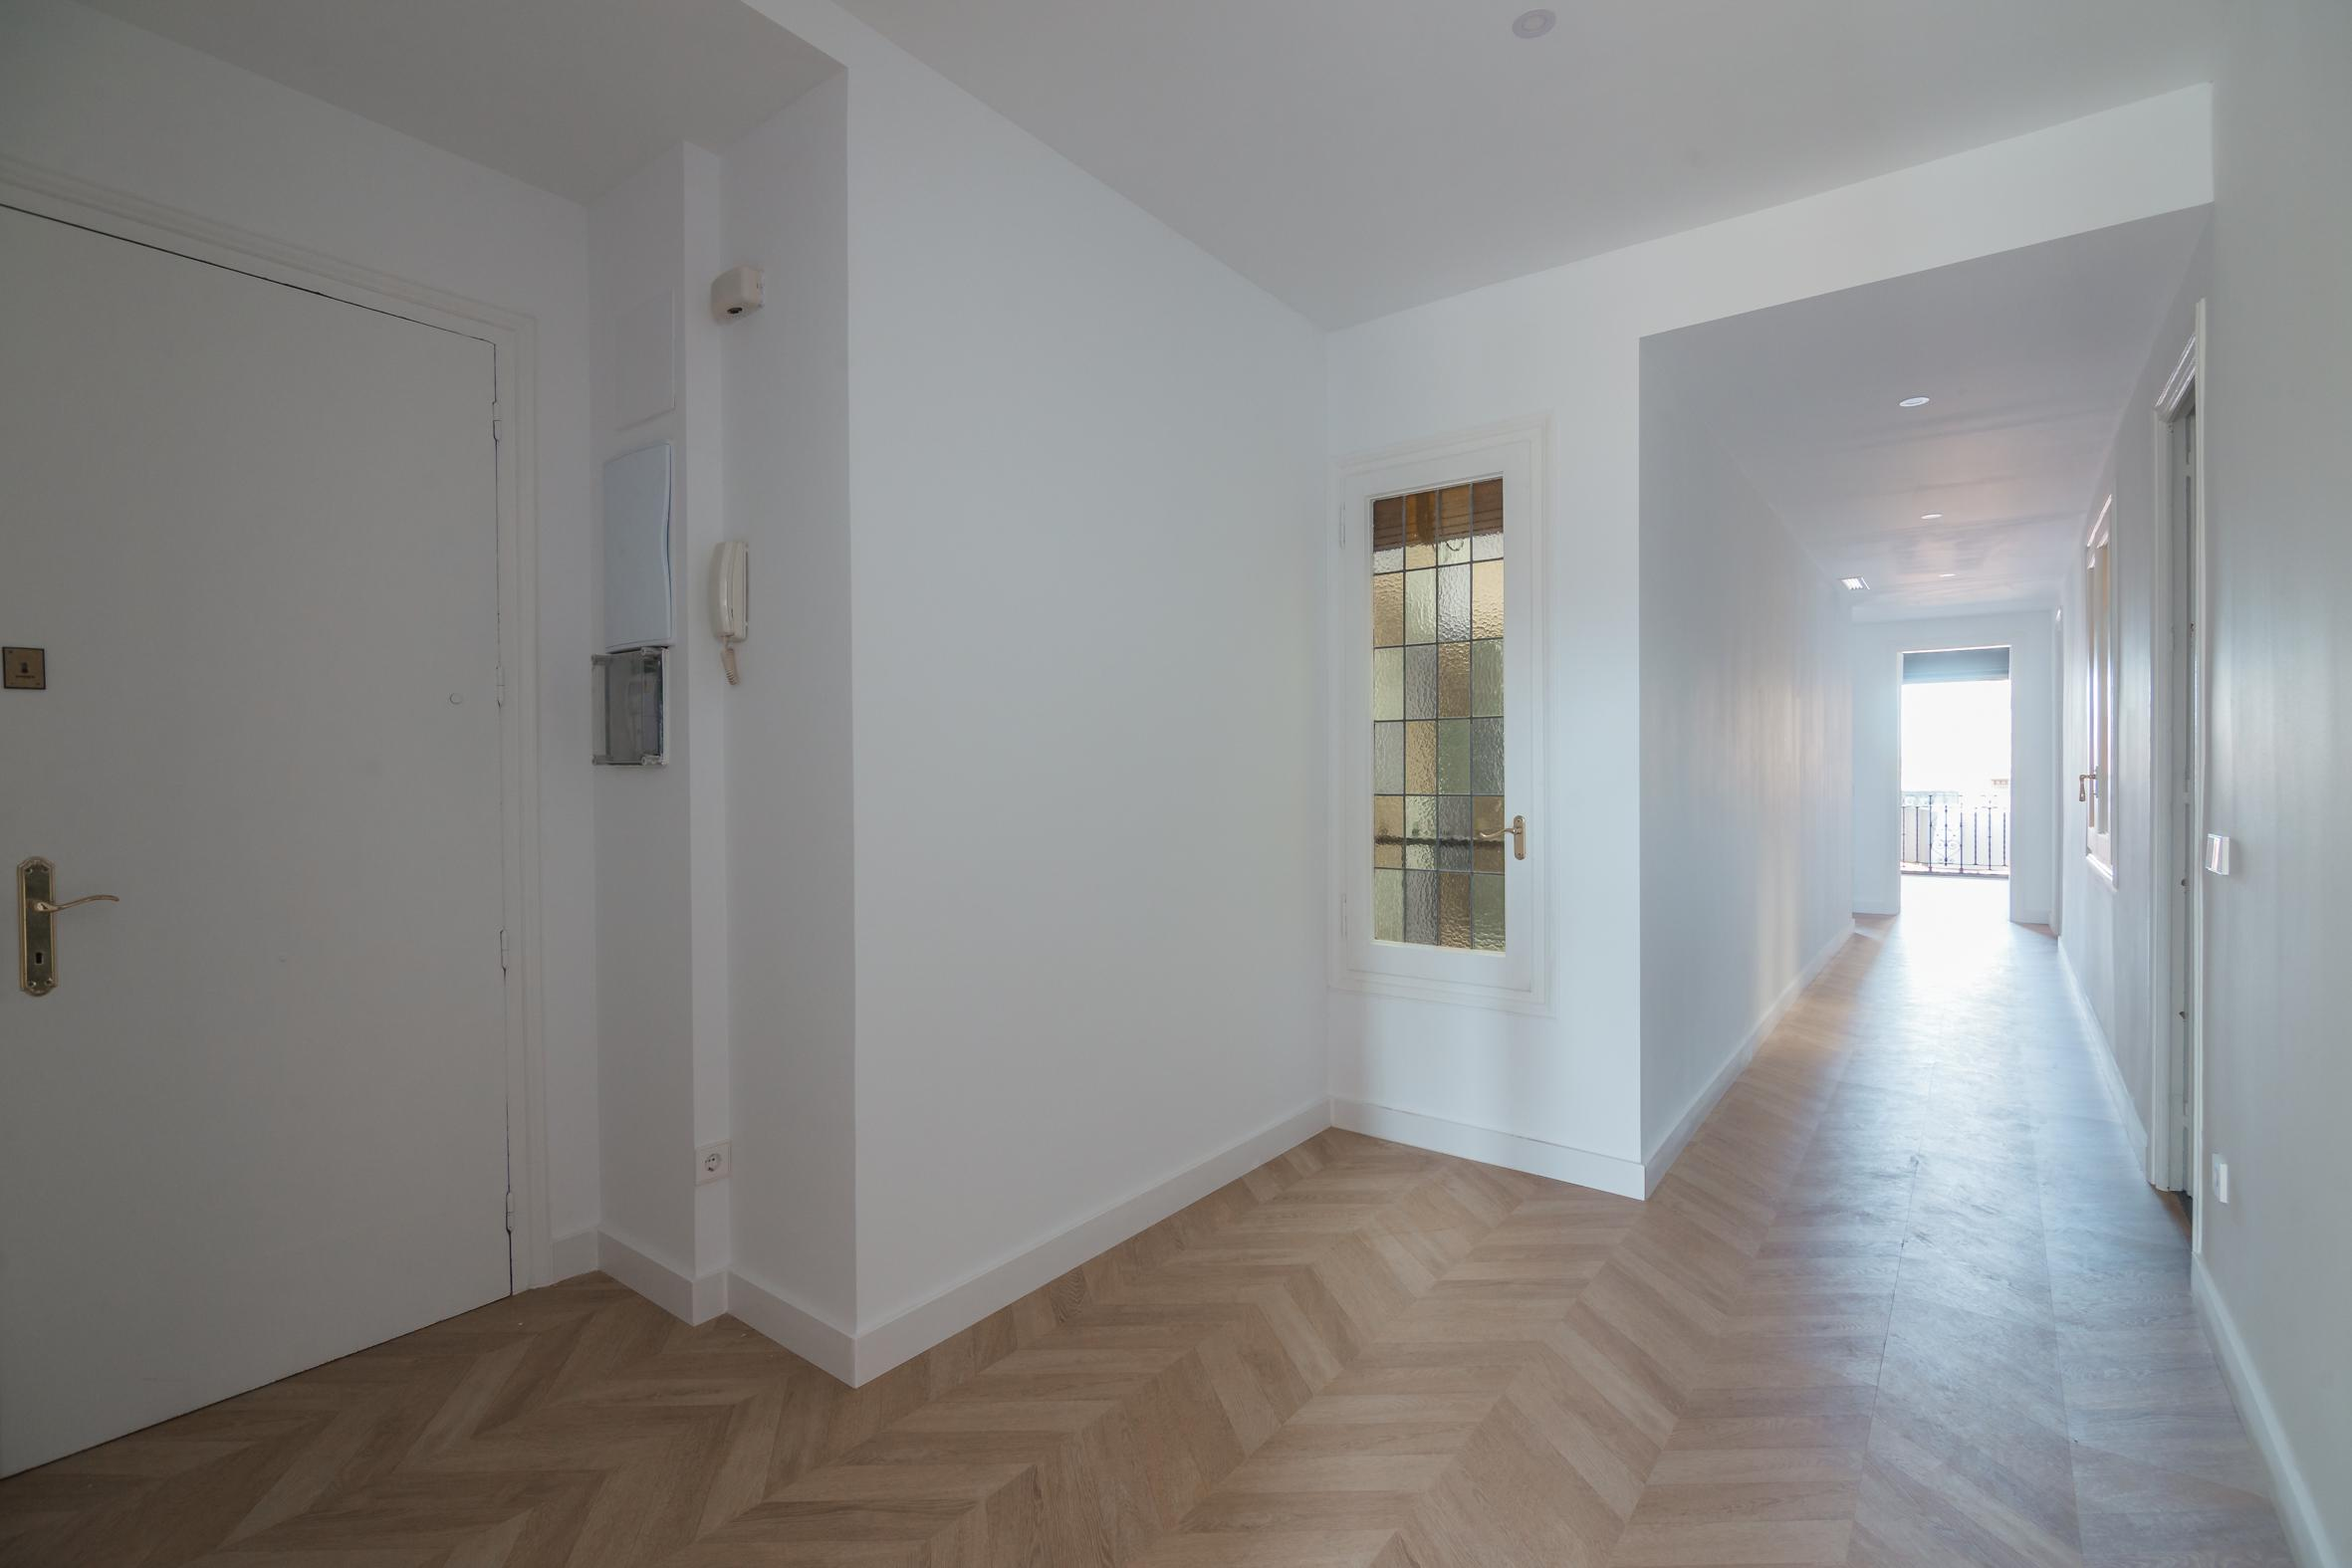 244010 Flat for sale in Ciutat Vella, Barri Gótic 17